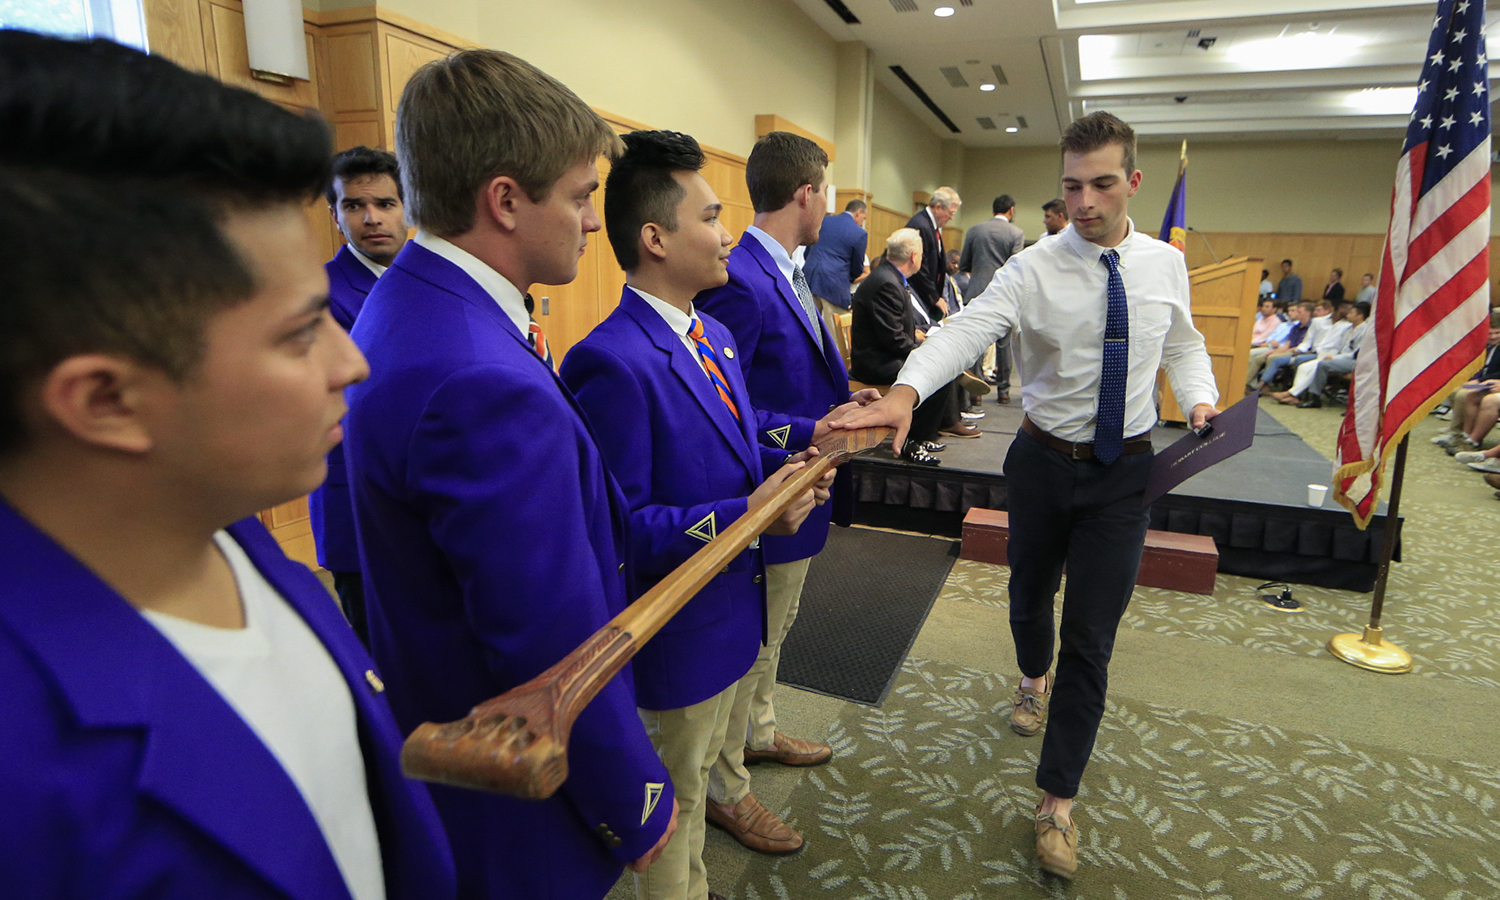 Nathan Jacon '22 (??) touches the Paddle of the legendary Seneca warrior Agayentah held by members of the Druid Society during Hobart College Matriculation.